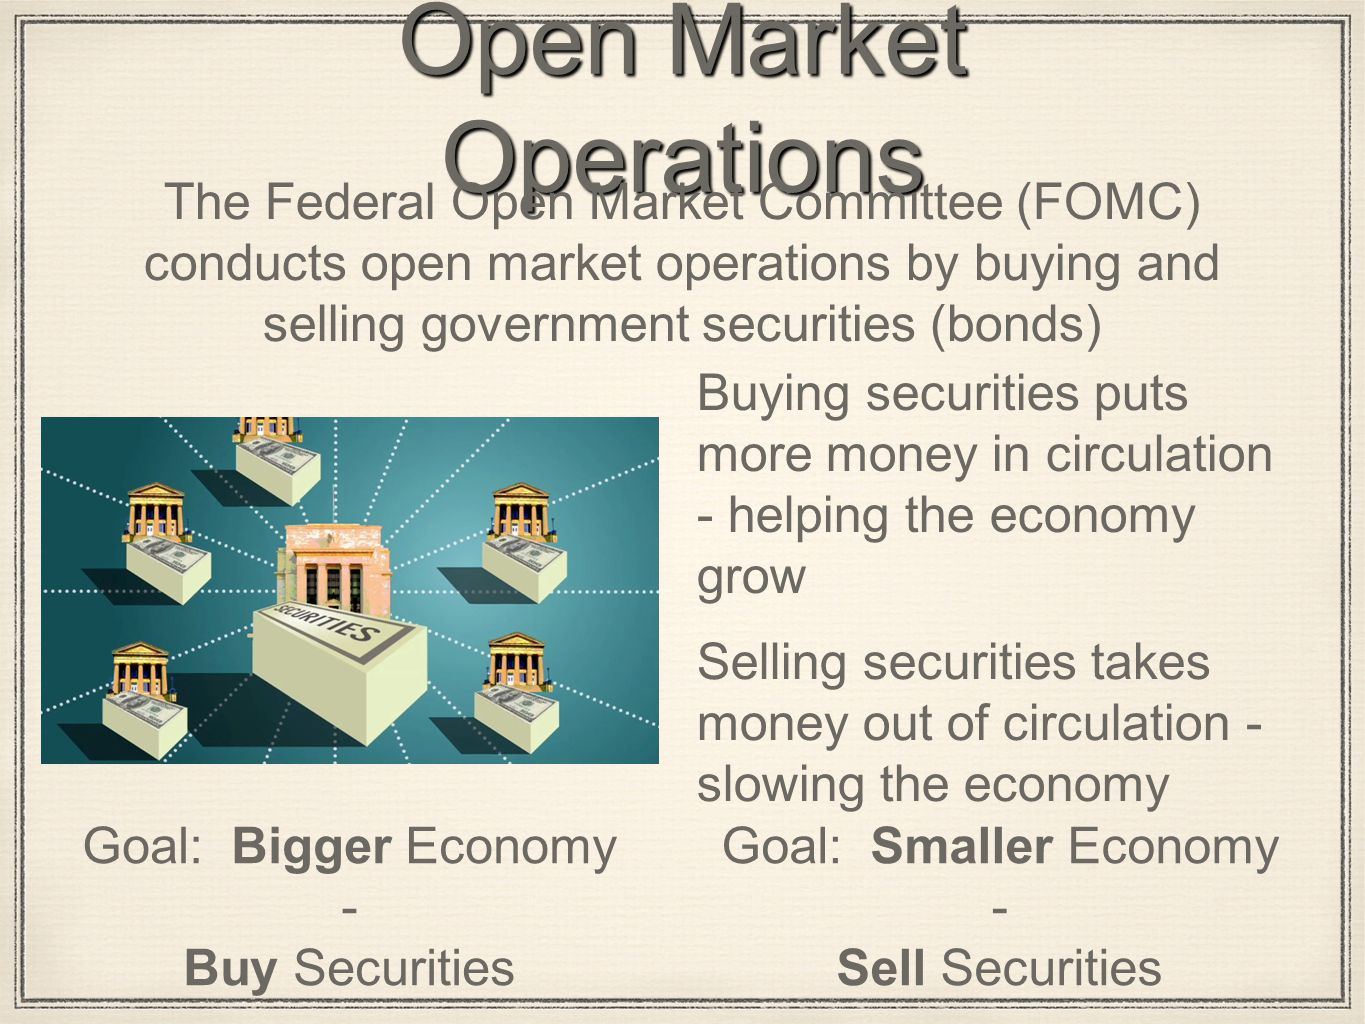 Open Market Operations The Federal Open Market Committee (FOMC) conducts open market operations by buying and selling government securities (bonds) Buying securities puts more money in circulation - helping the economy grow Selling securities takes money out of circulation - slowing the economy Goal: Bigger Economy - Buy Securities Goal: Smaller Economy - Sell Securities